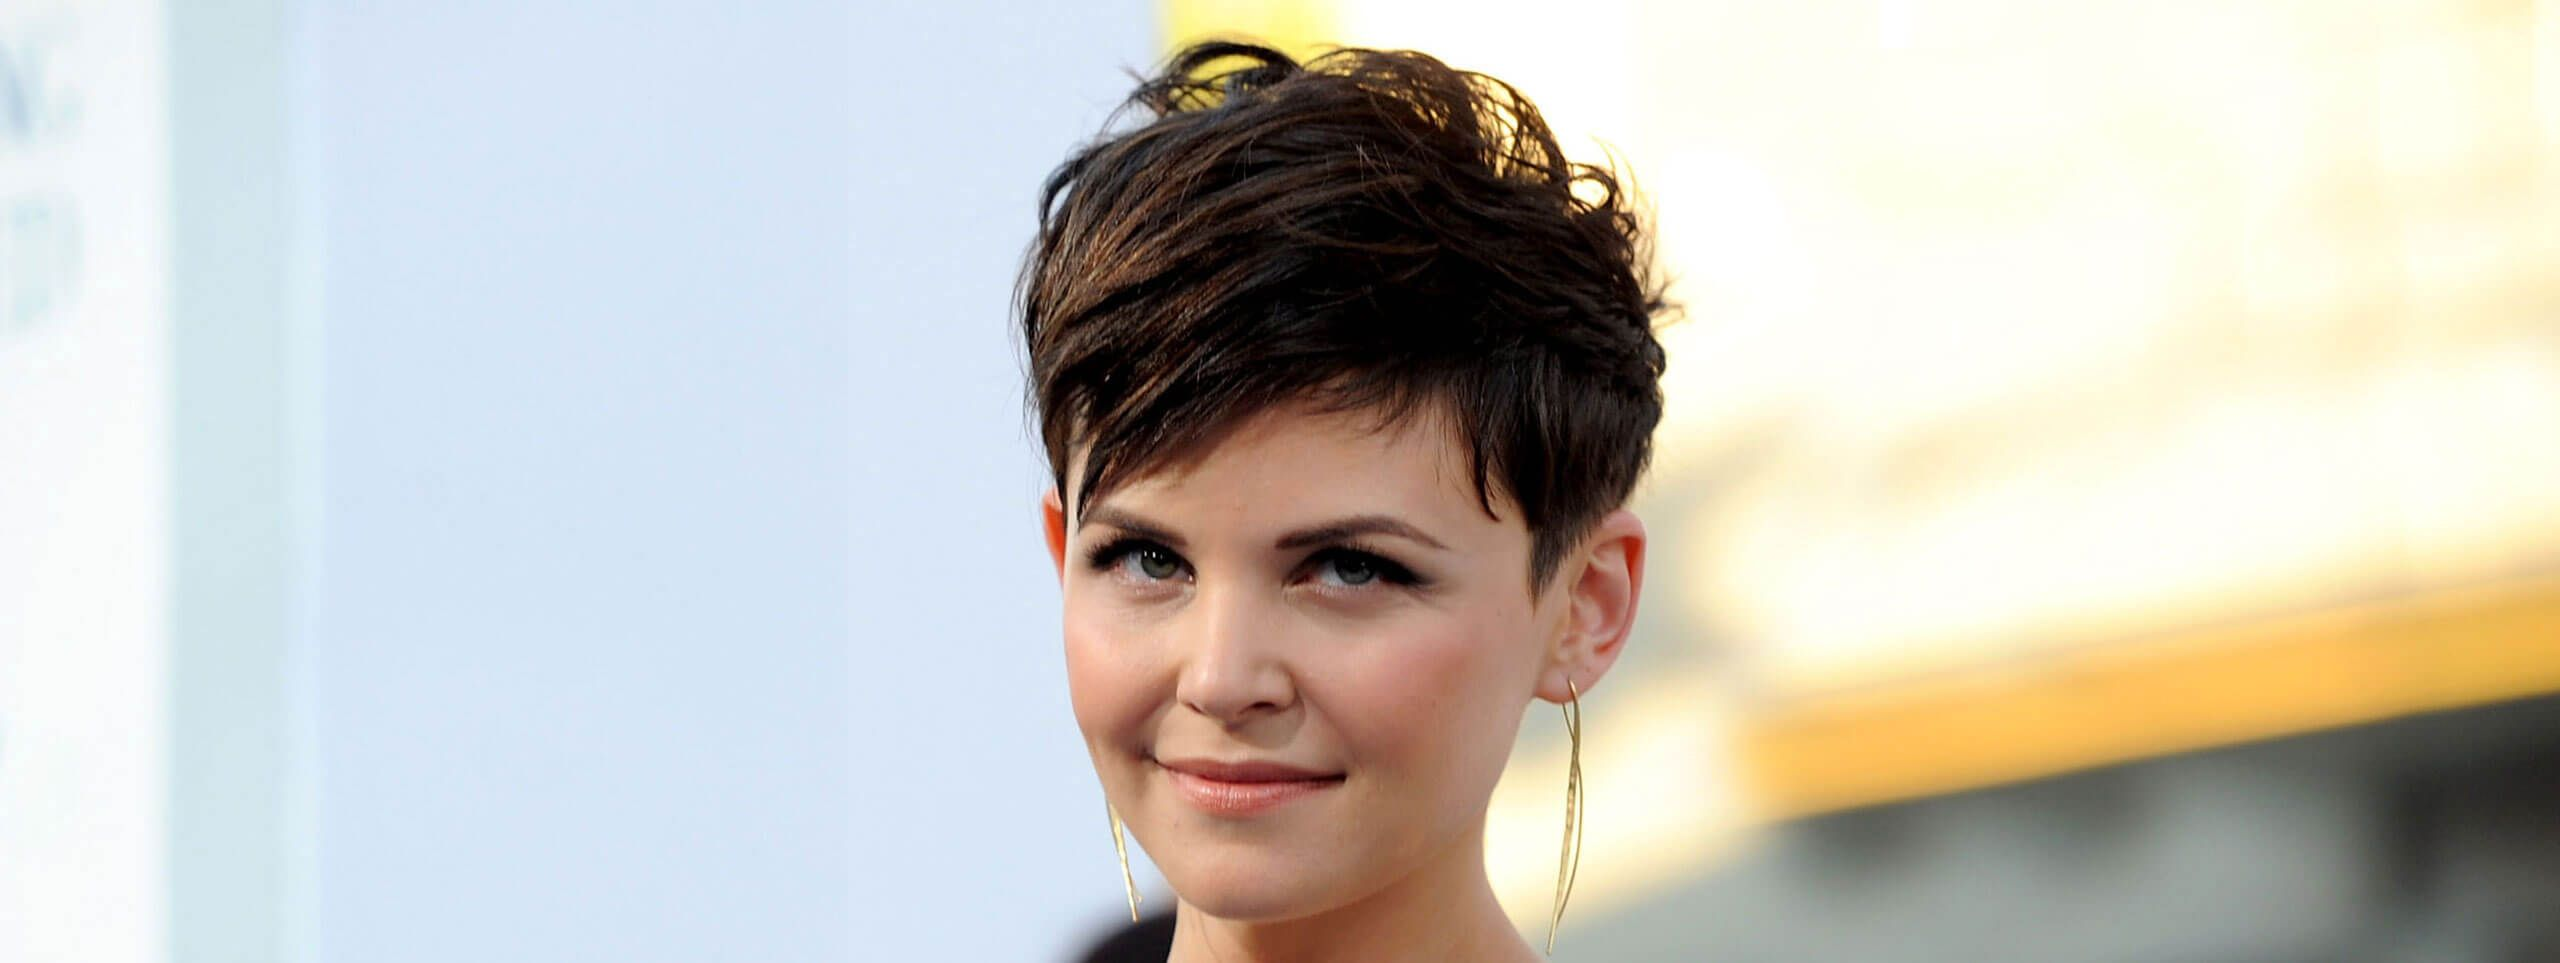 Short Haircuts Find A Great Style